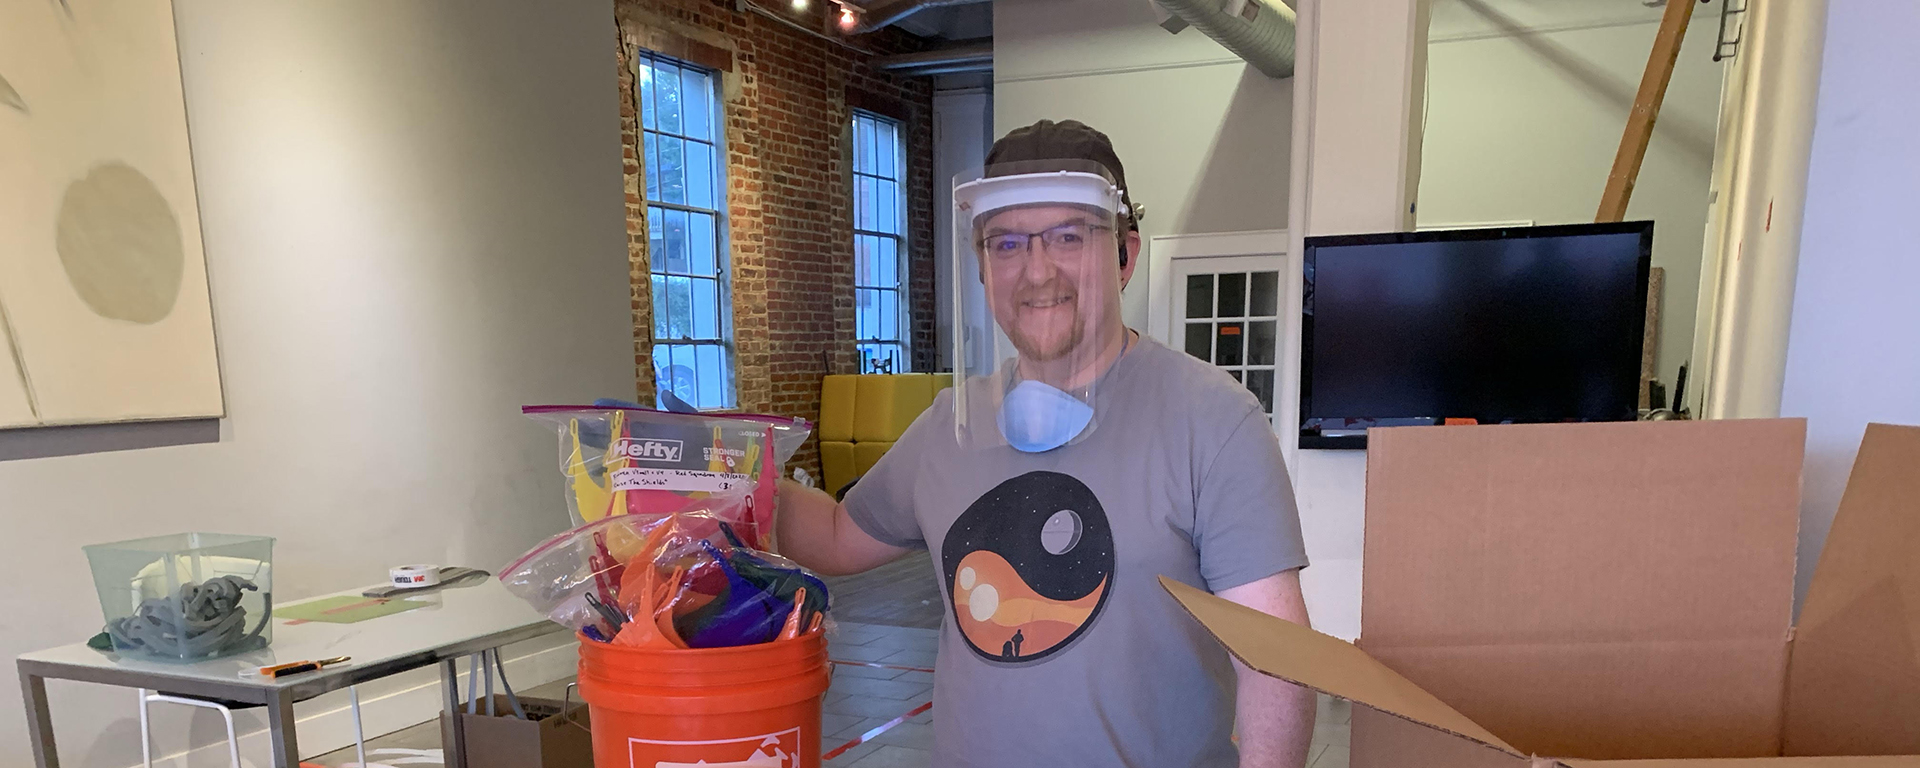 Capital One lead software engineer is creating reusable personal protective equipment PPE using 3D printing for COVID-19